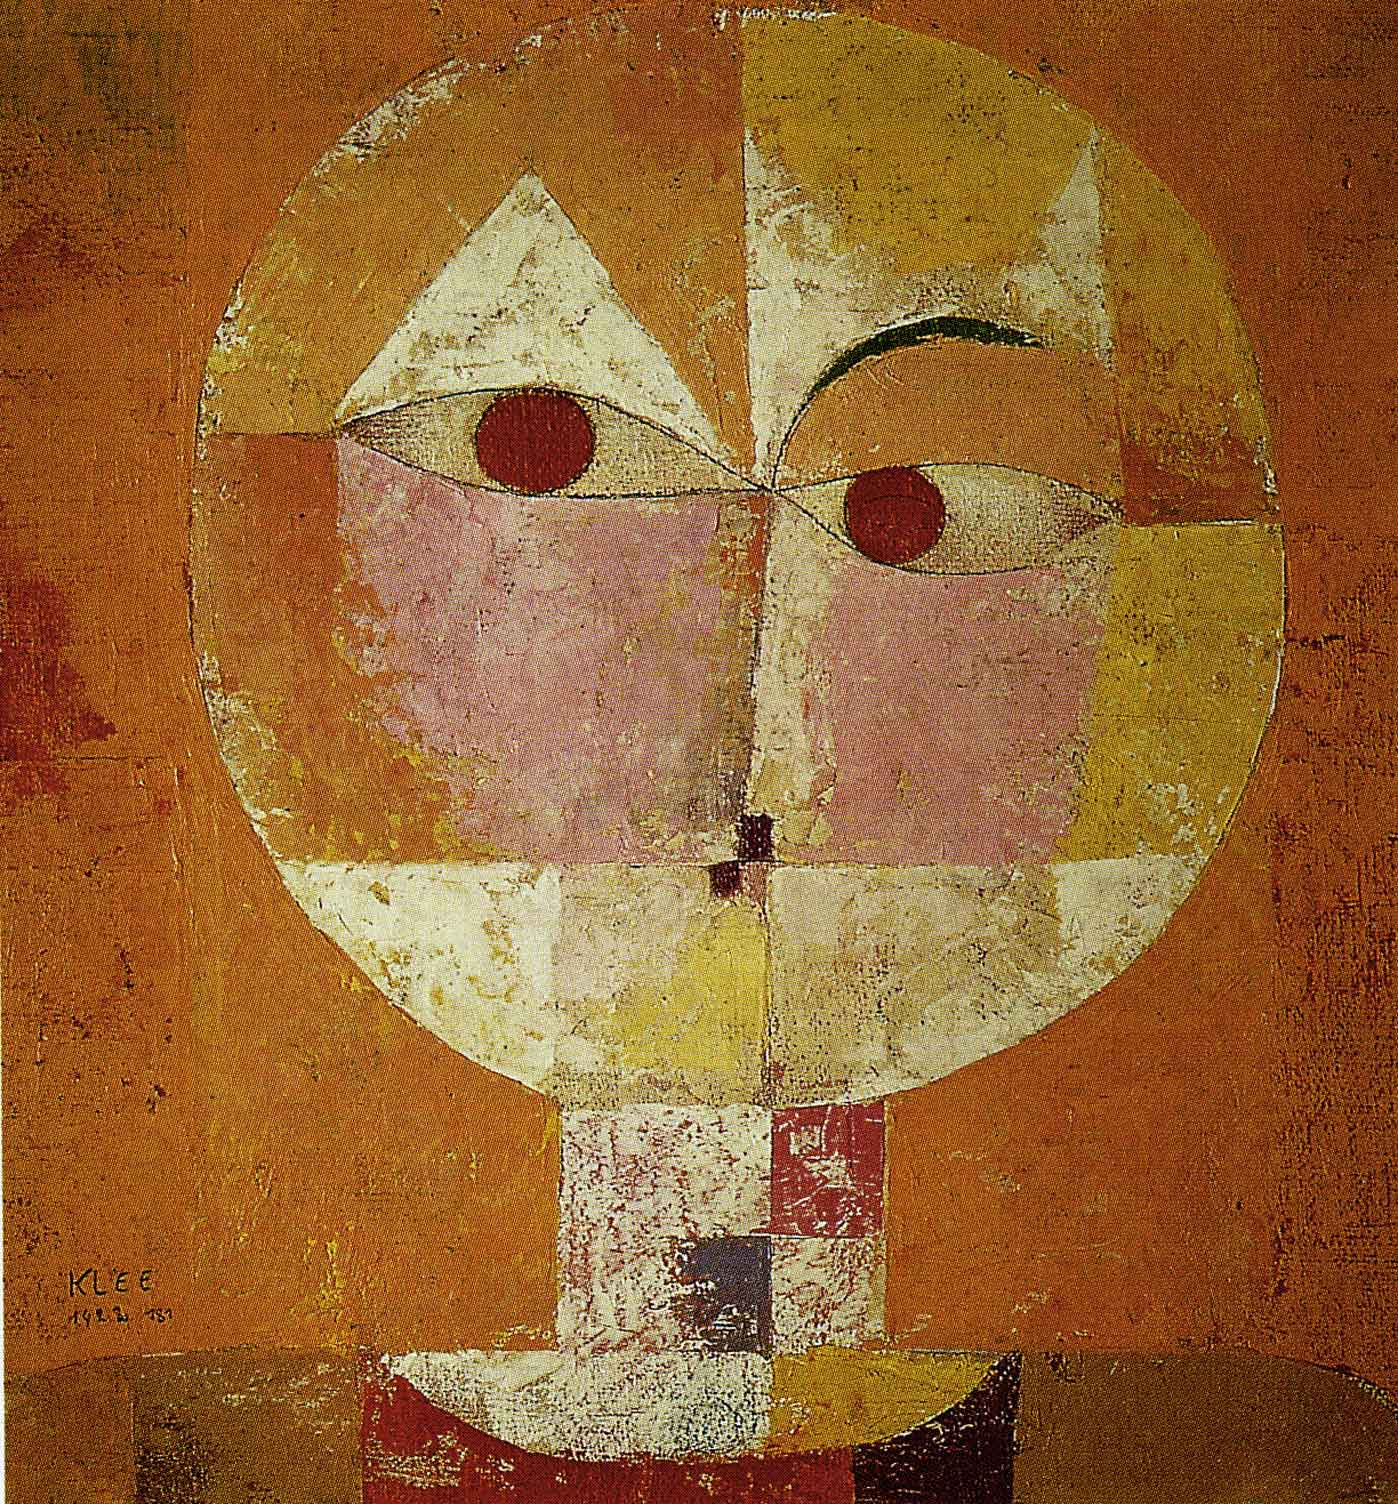 Paul Klee Pinturas Artes Do A 39uwe Obras De Paul Klee